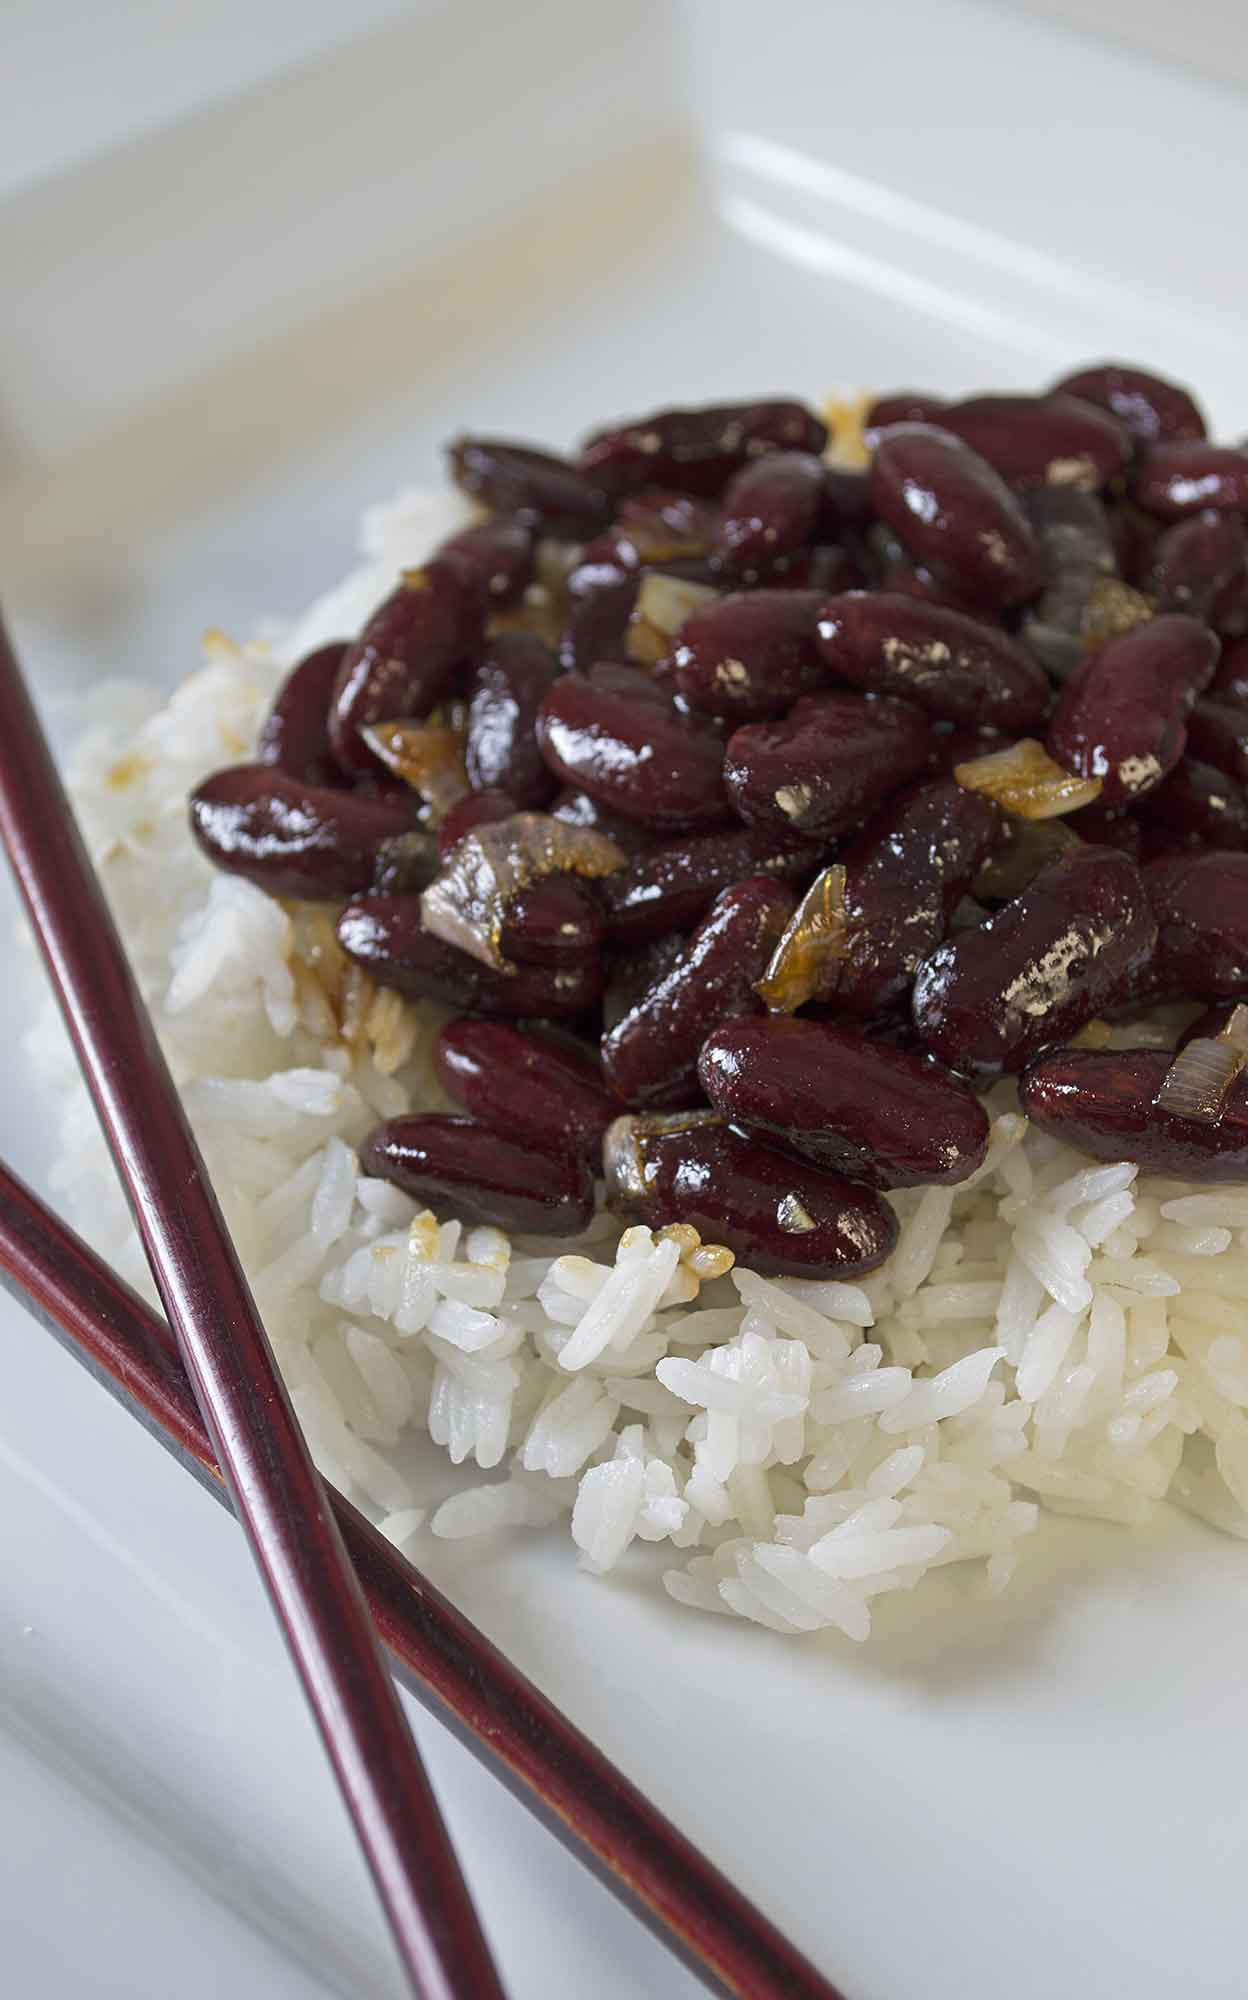 Kidney Beans and Rice With Sauce